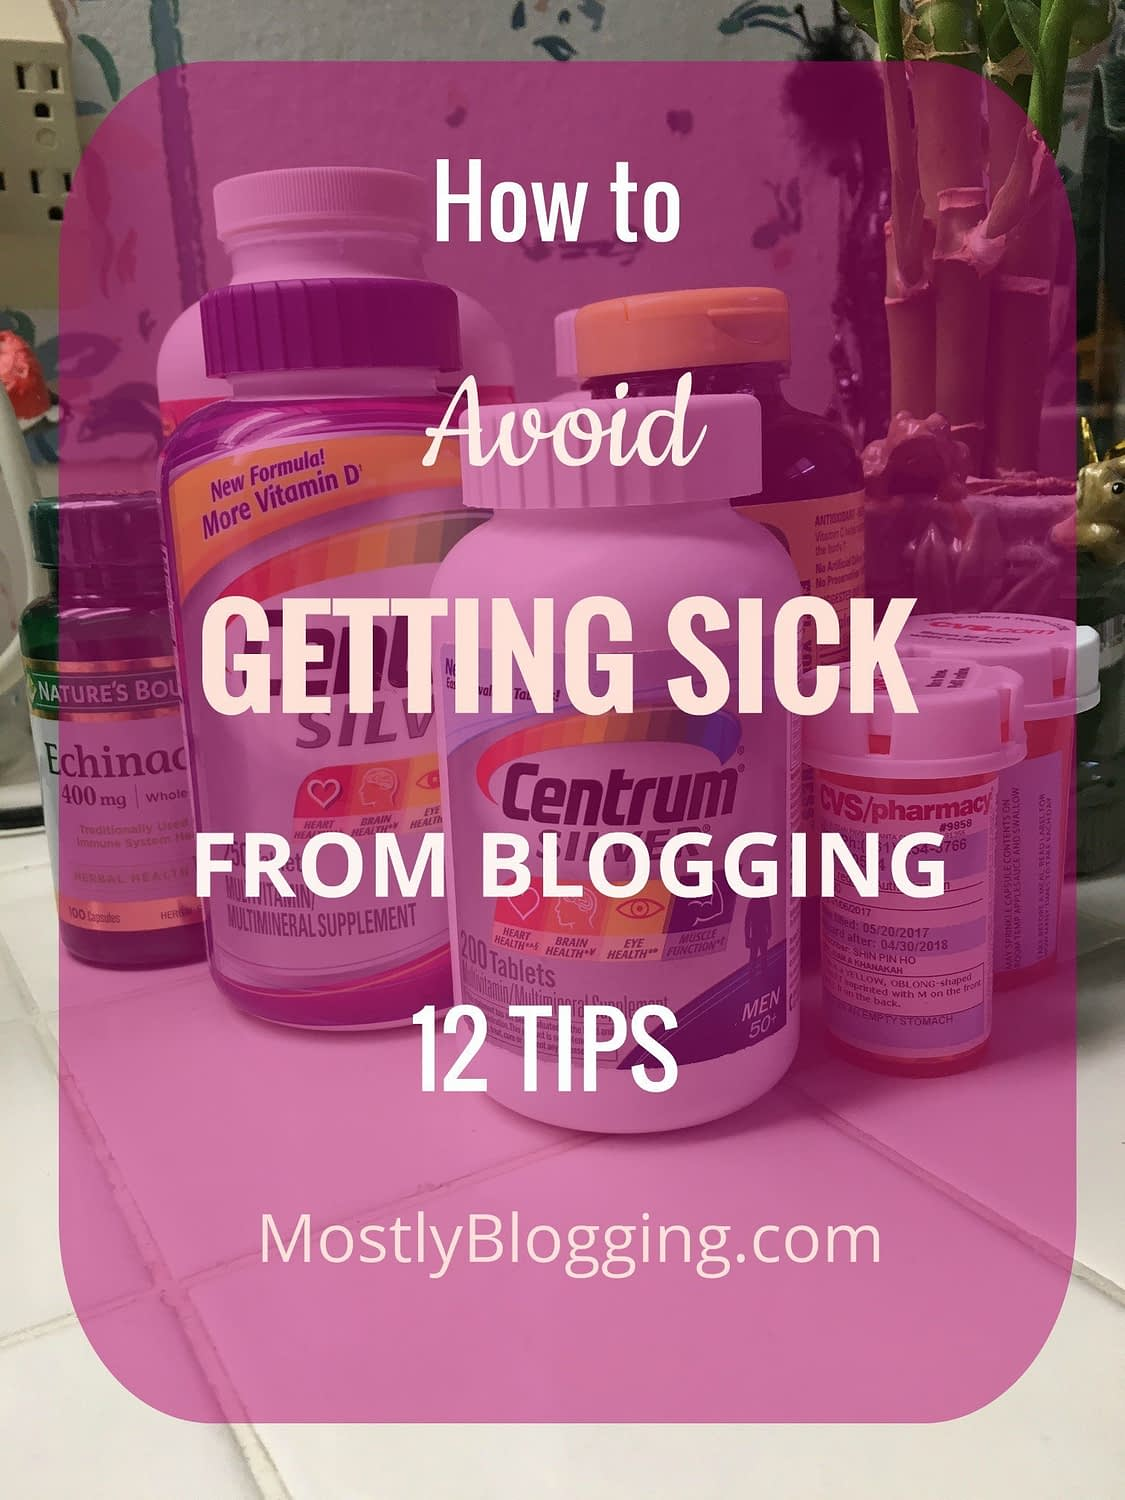 You can be a healthy blogger by following these 12 tips